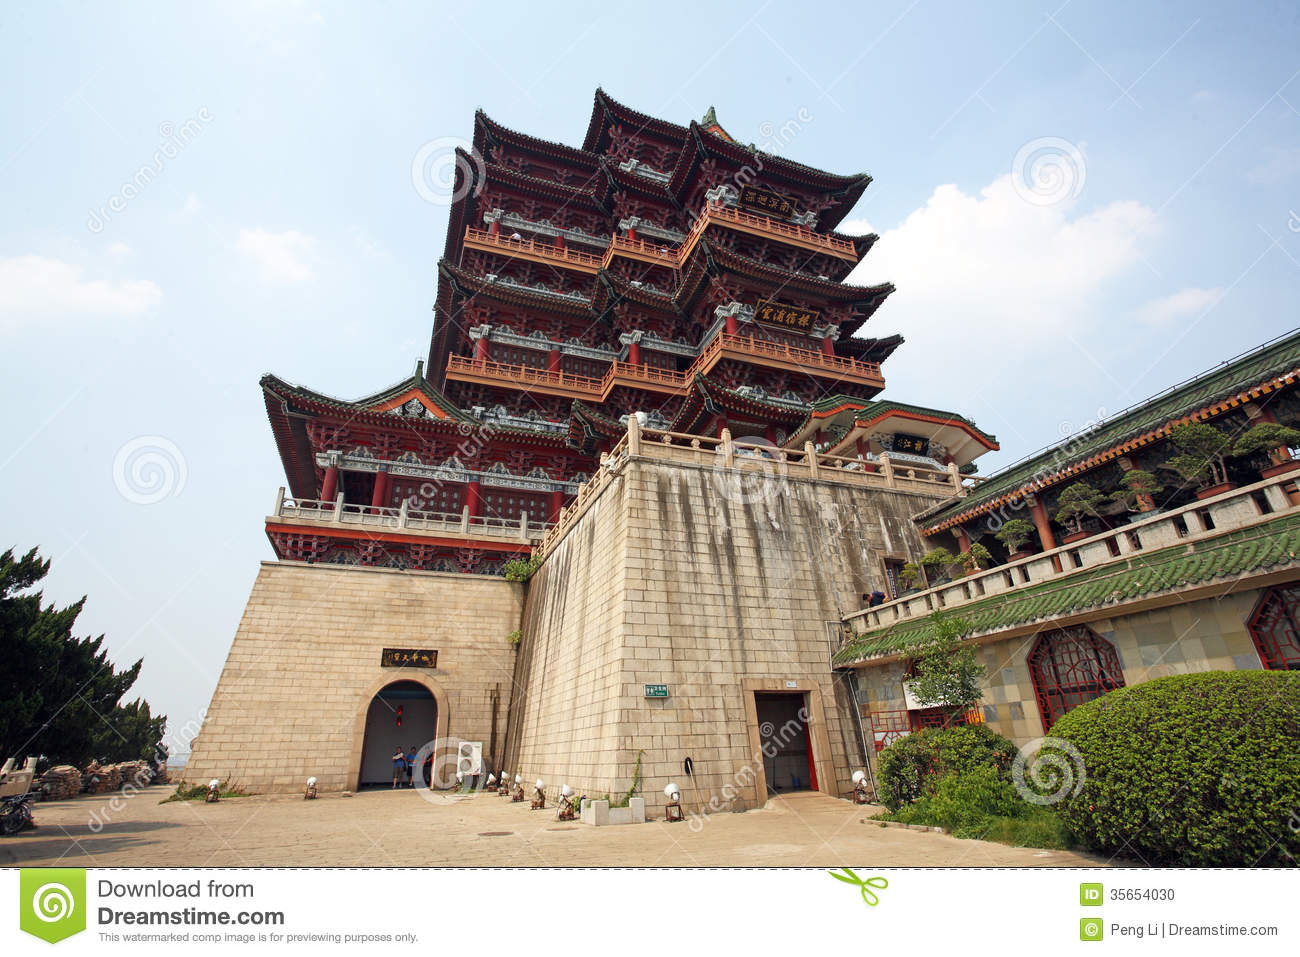 ancient architecture in china - photo #24